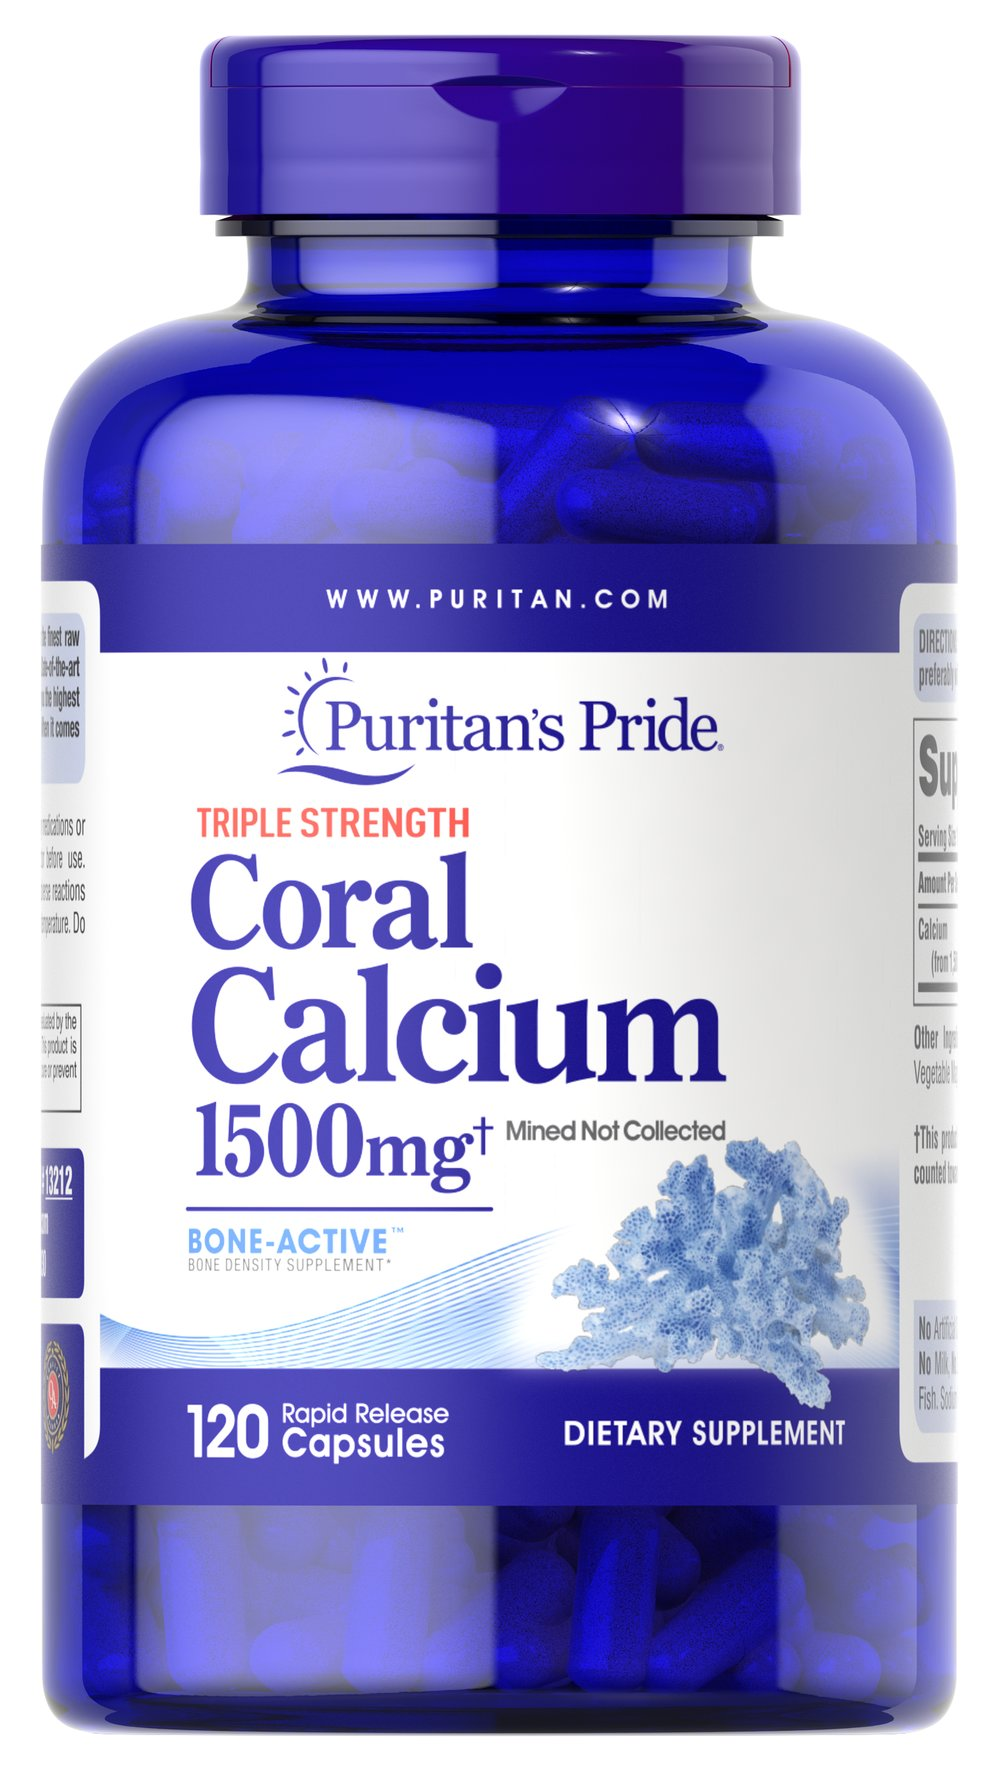 Triple Strength Coral Calcium 1500 mg <p>Our Triple Strength Coral Calcium delivers three times the amount of Calcium (562 mg per capsule — 1500 mg daily when taken as directed). Calcium promotes bone strength and supports heart, nerve and muscle functions.** This Coral Calcium is mined, not collected, from an above ground source  making it environmentally friendly.</p> 120 Capsules 1500 mg $46.29